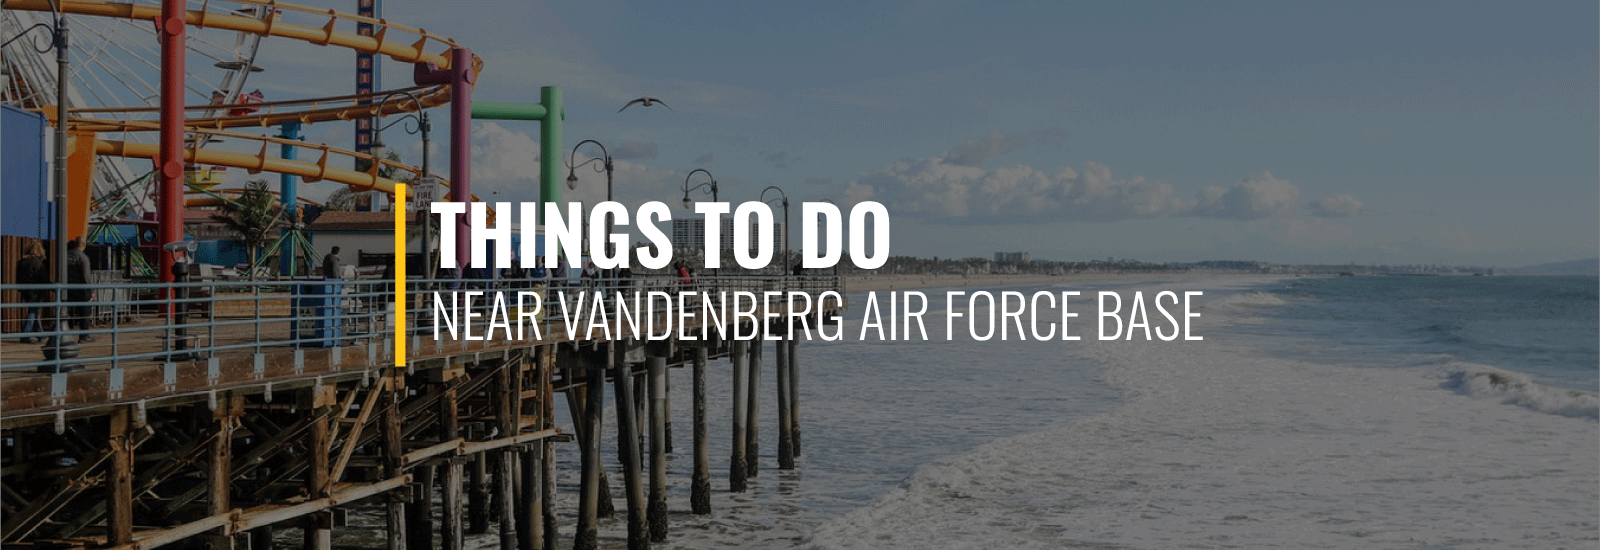 Things to Do Around Vandenberg AFB